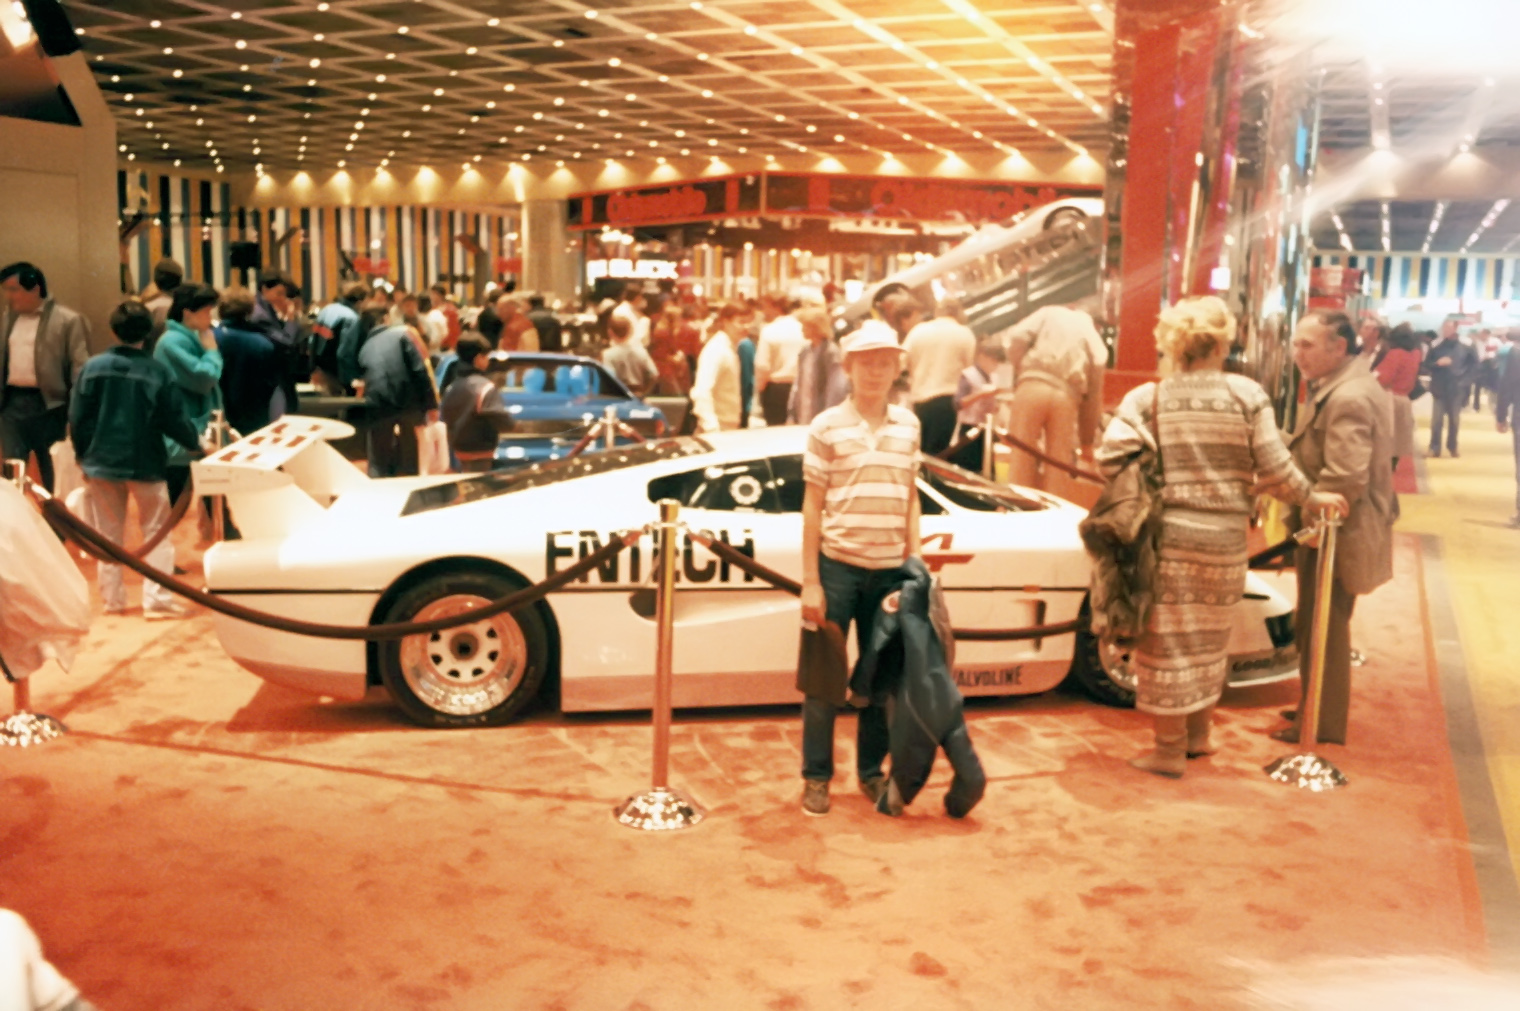 Another pic of a 12 year old me standing in front of the Entech Pontiac race car